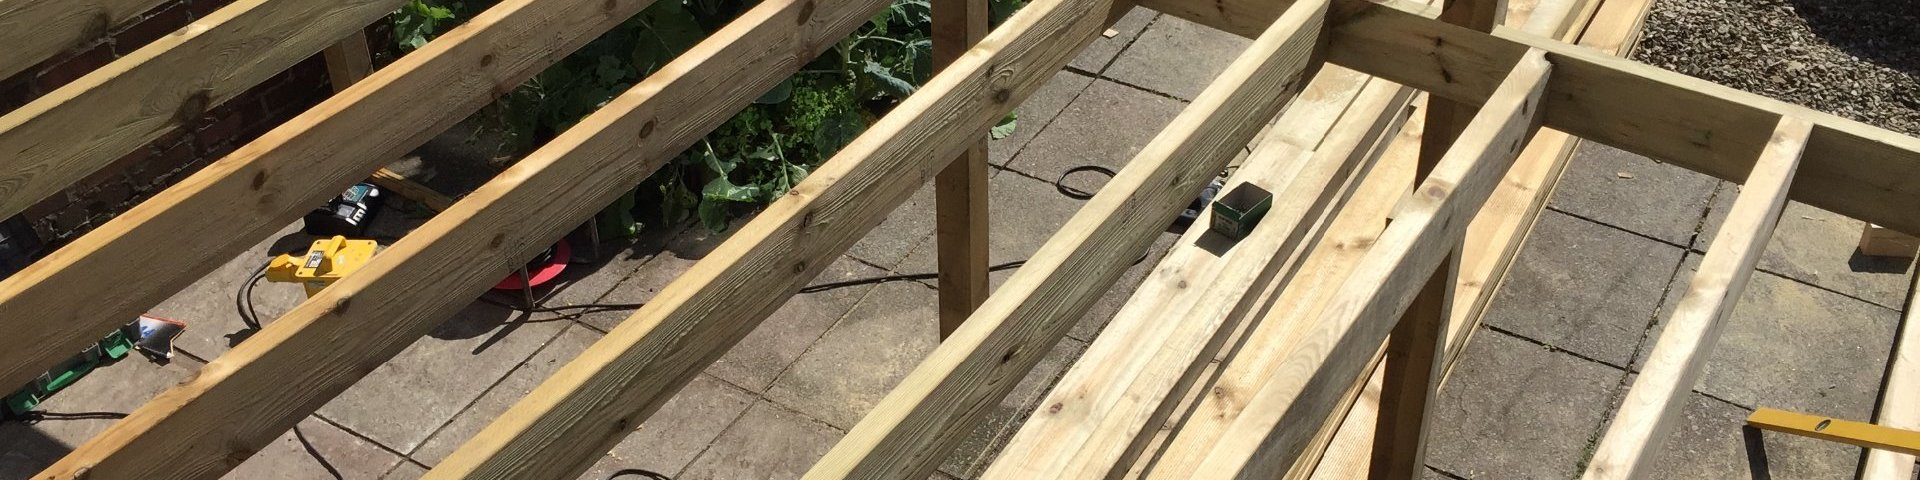 High level decking construction over back yard